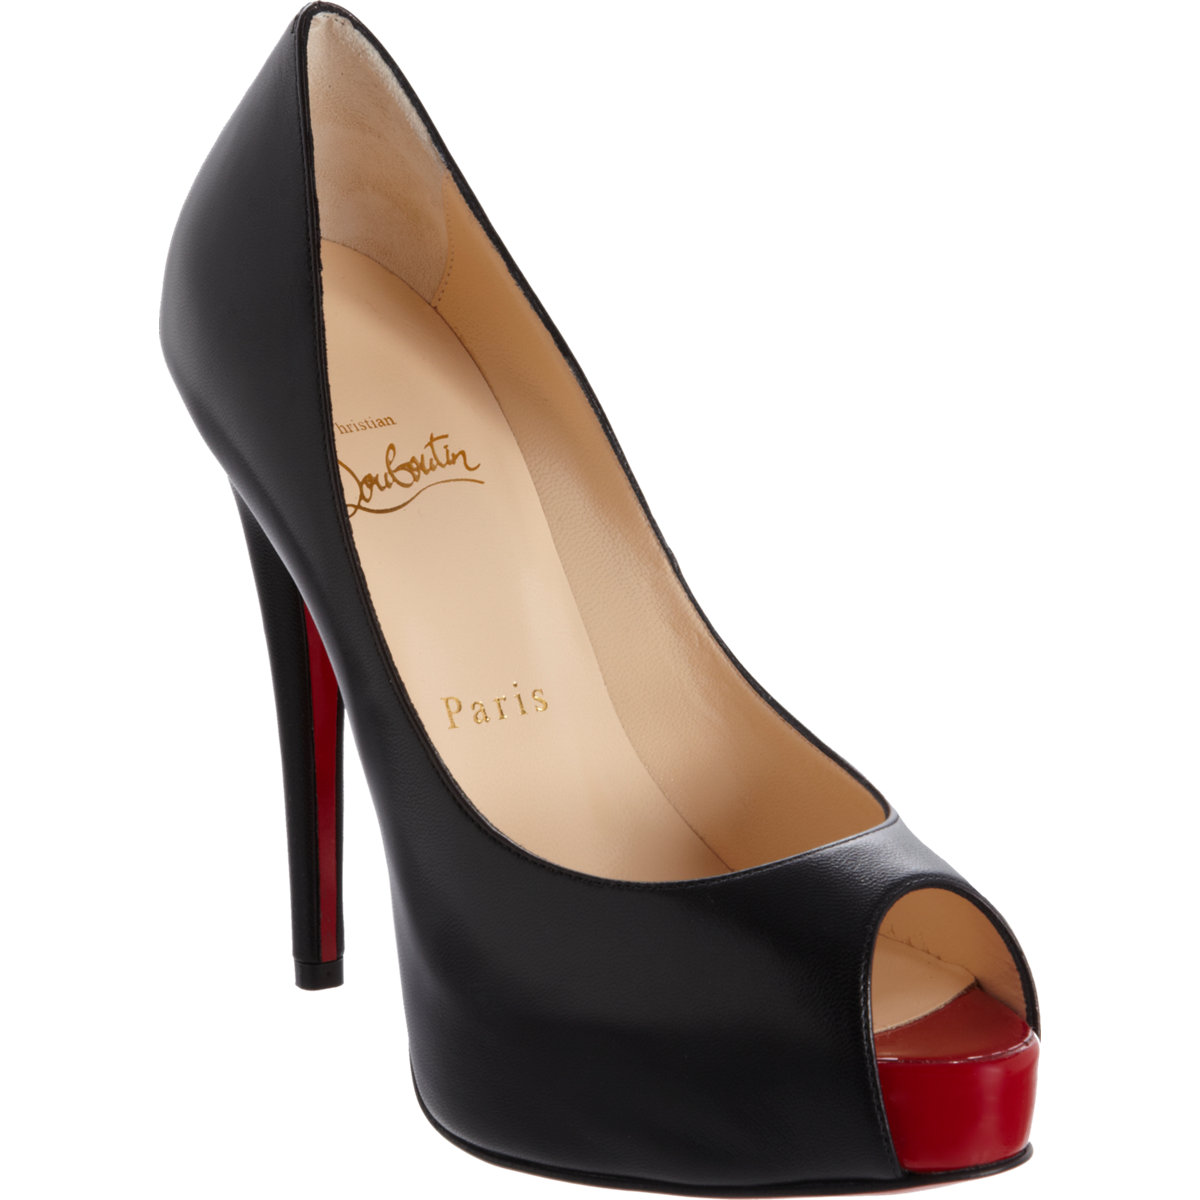 dfadef0e21 Christian Louboutin Vendome Peep Toe Pumps in Black - Lyst